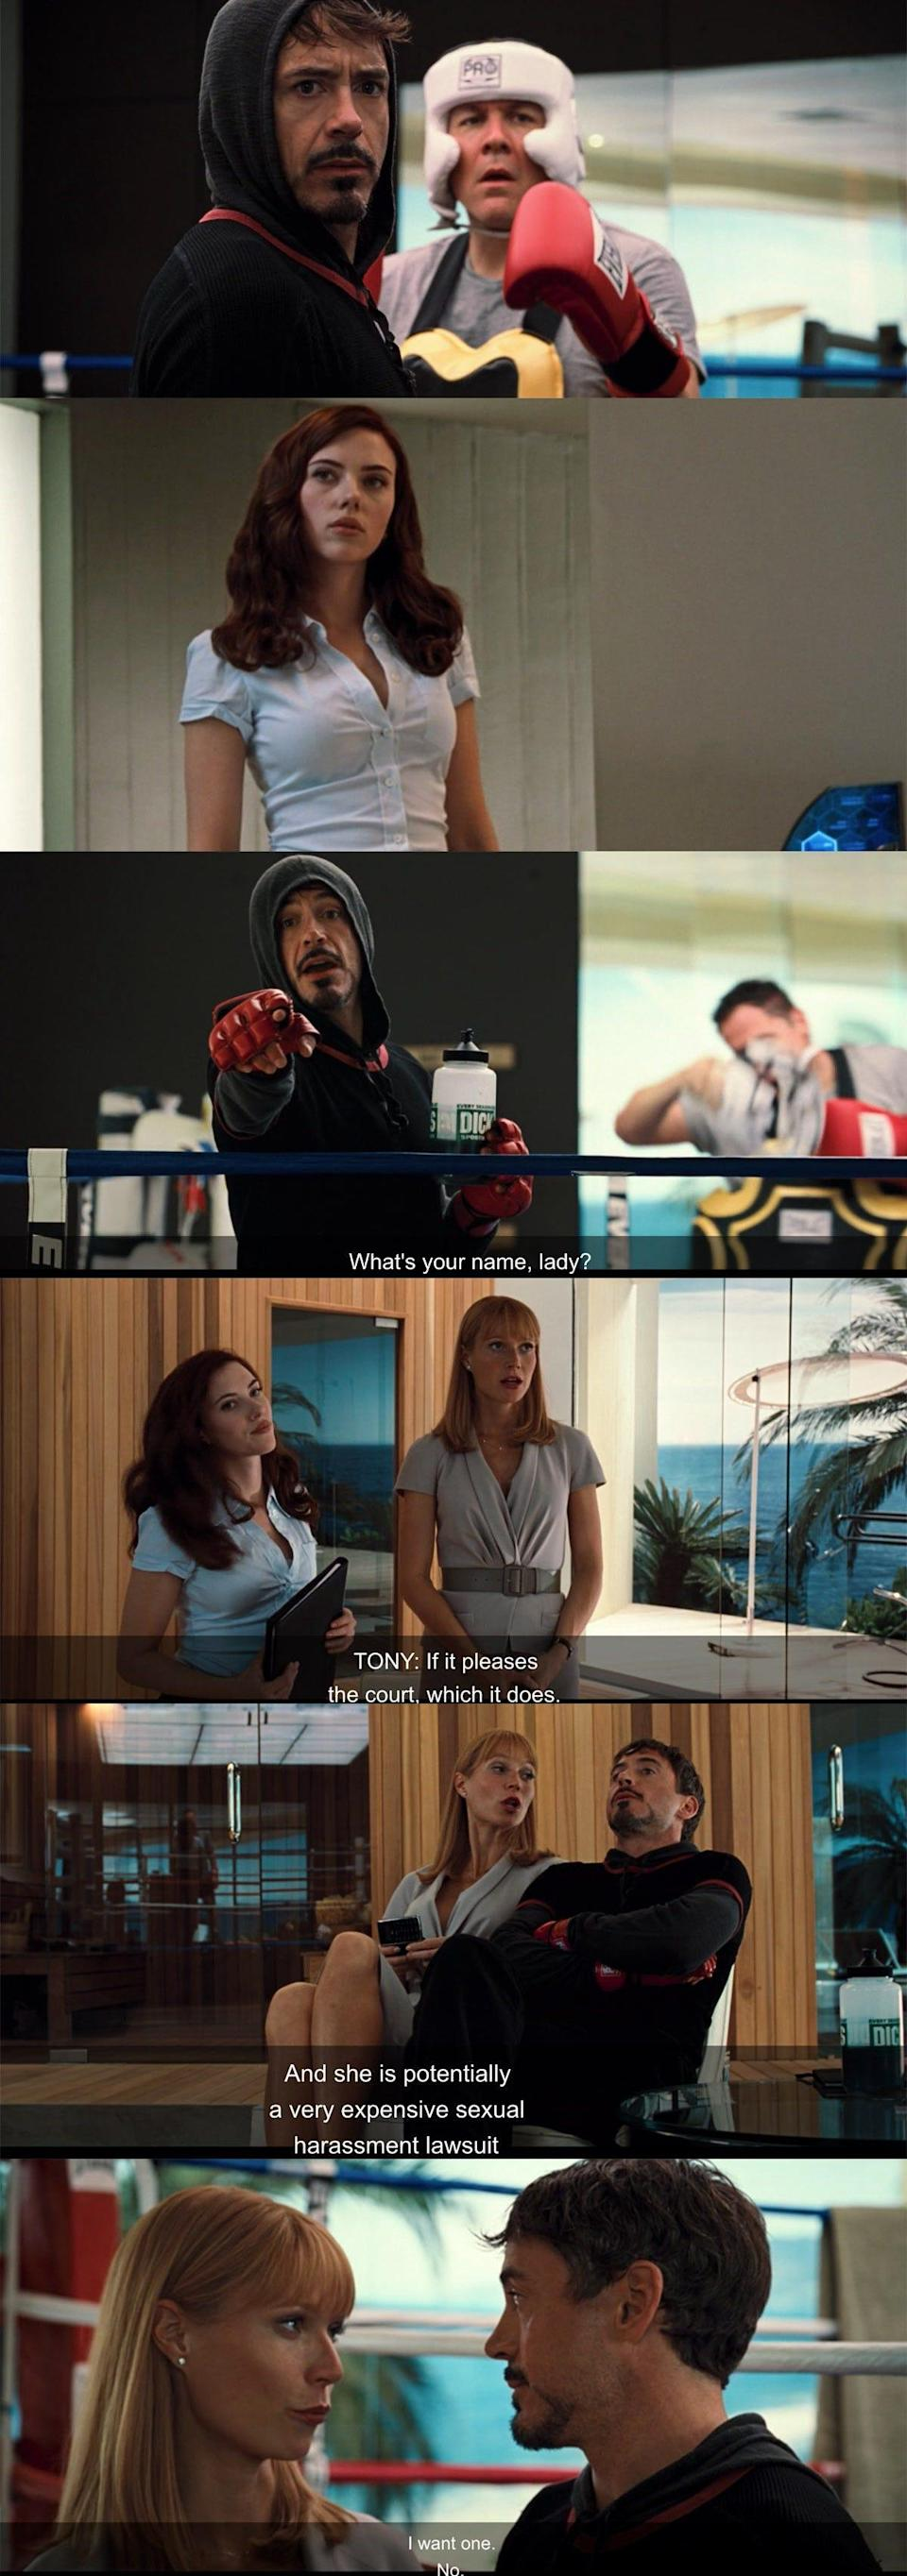 Nat's first appearance in Iron Man 2.